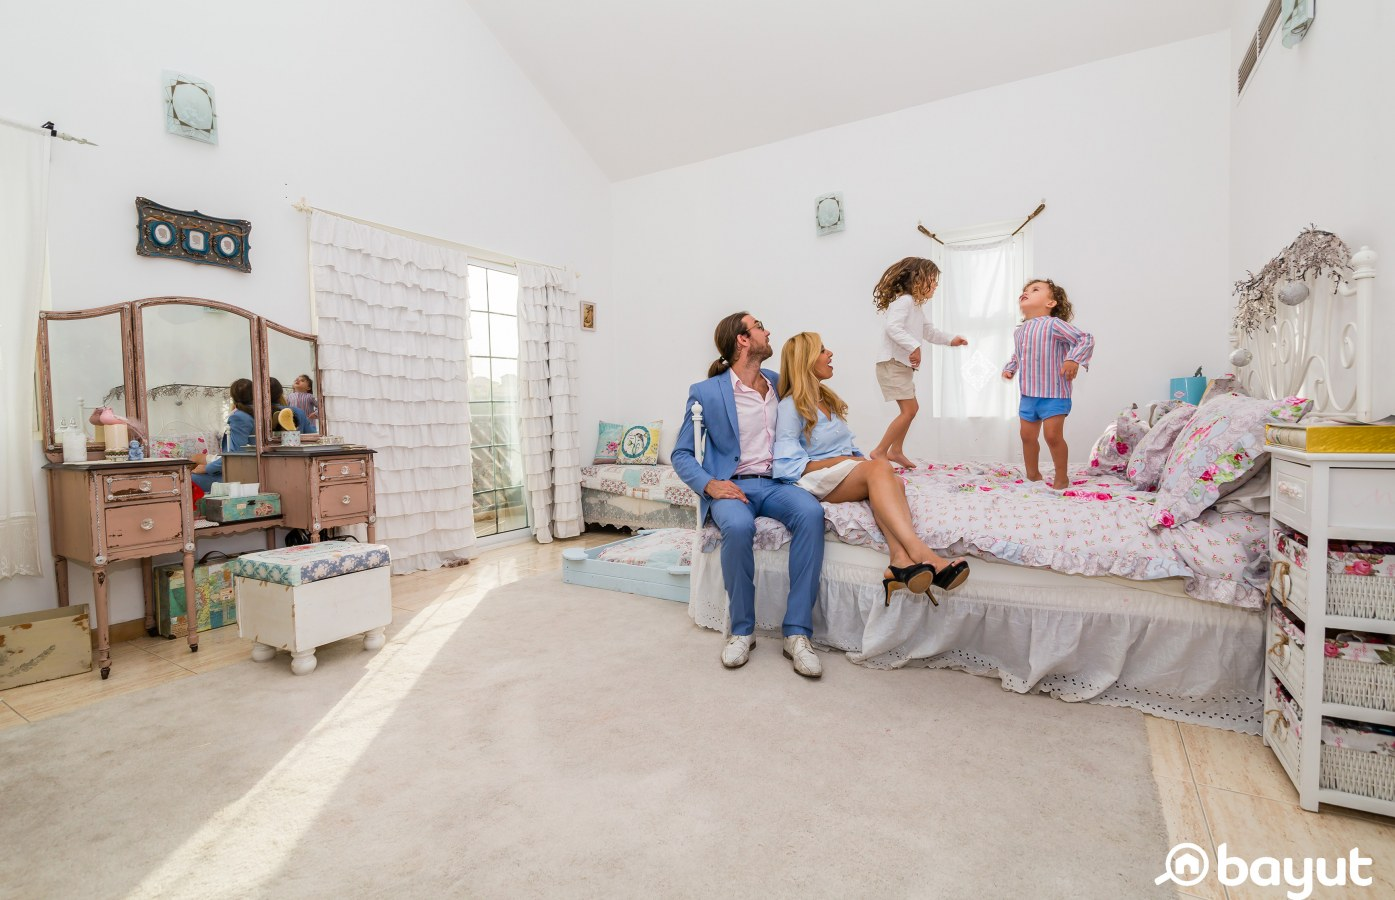 At home with Muby Astruc, the boys jumping on the bed